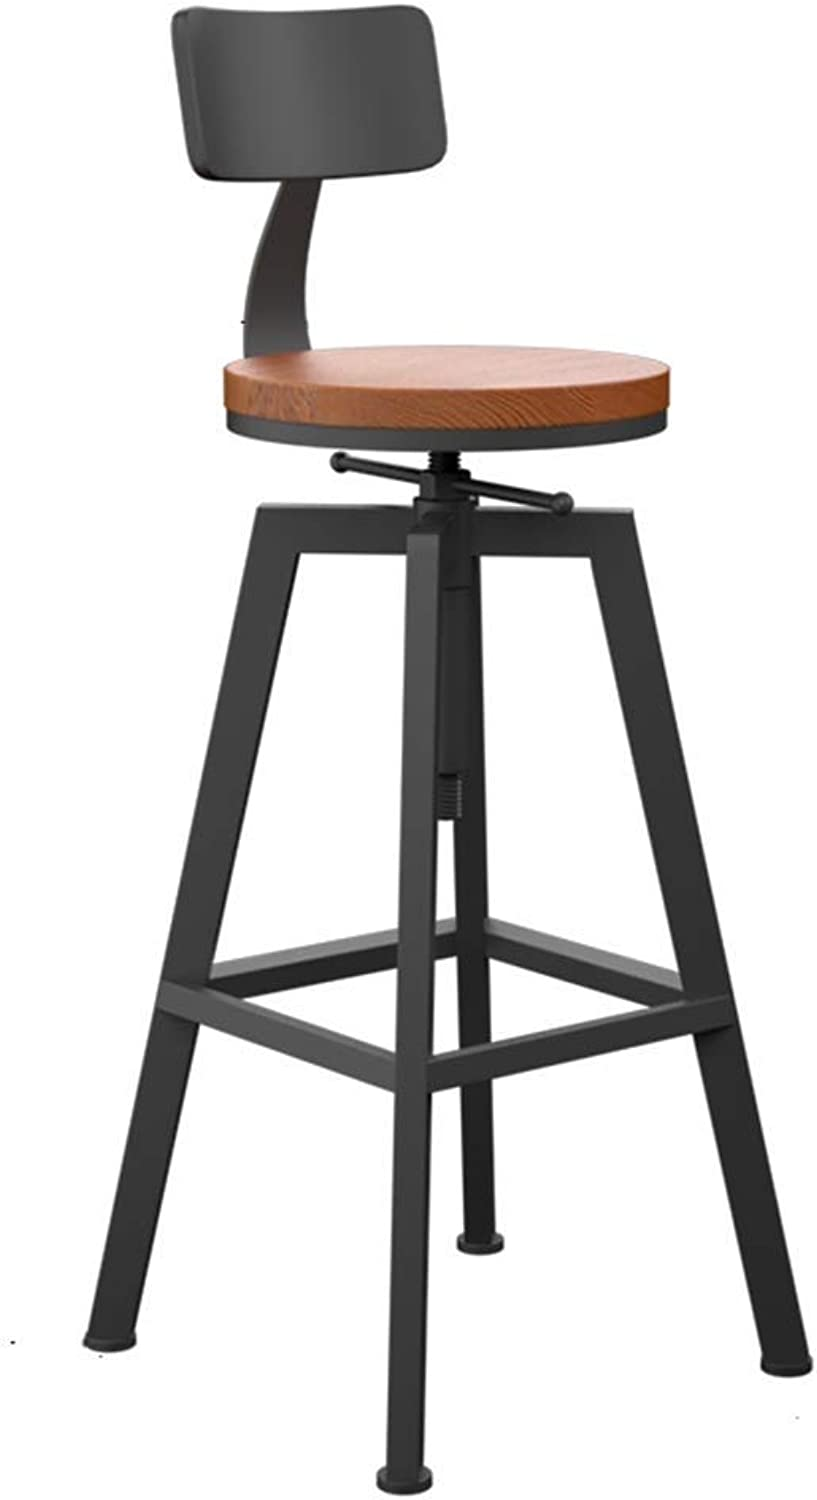 Stool Simple Bar Wrought Iron High Solid Wood Bar Round redating Lift Modern Bar Chair Comfortable and Durable GFMING (color   B)